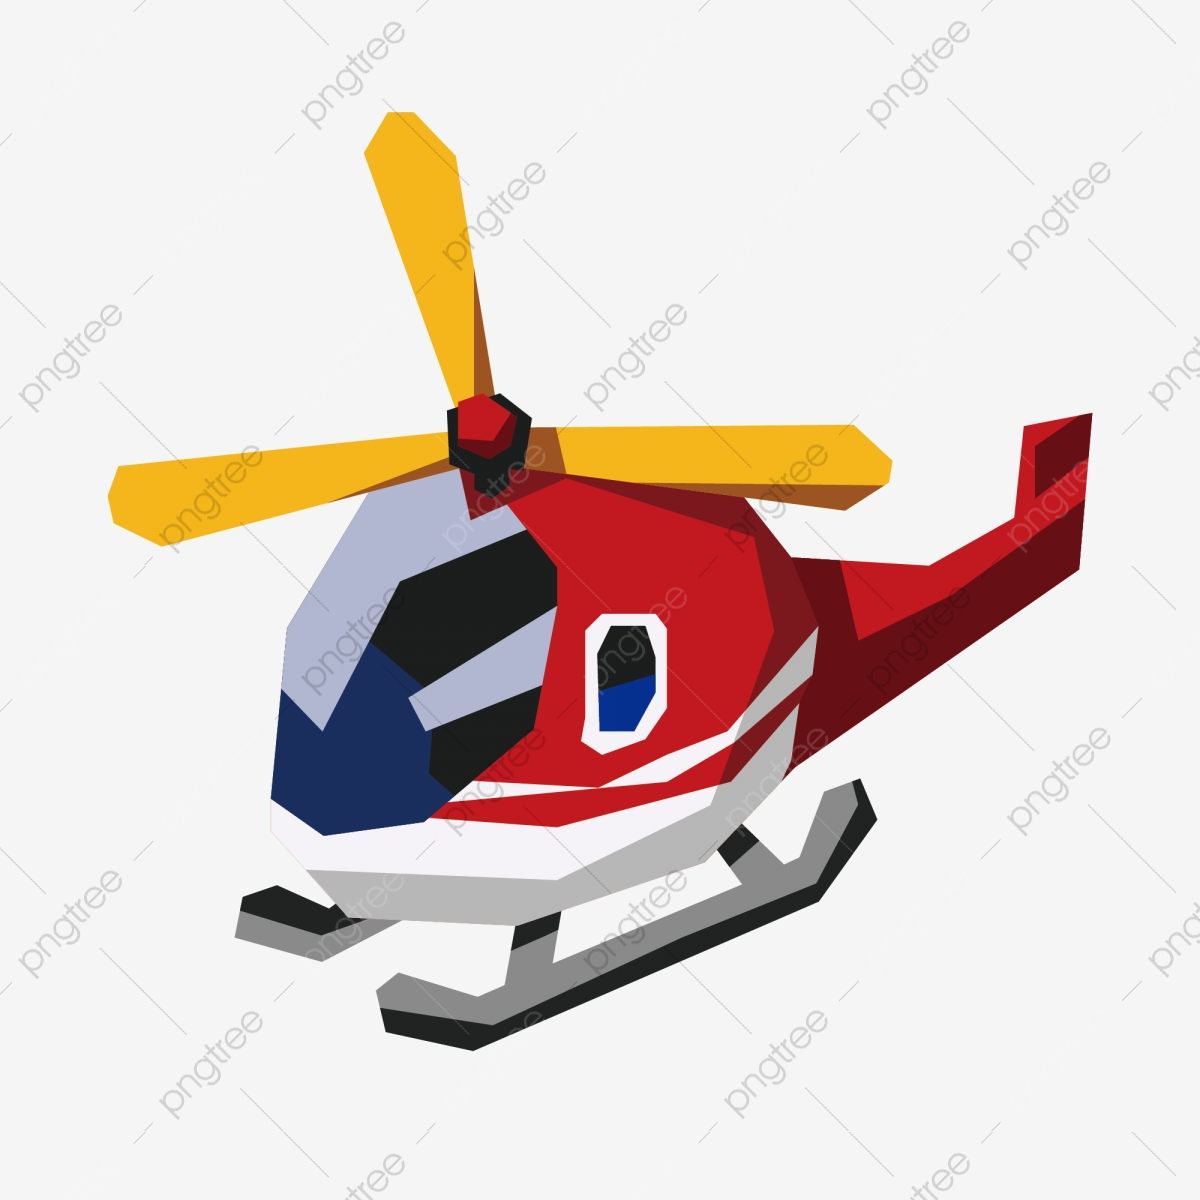 Helicopter clipart emergency helicopter. Rescue